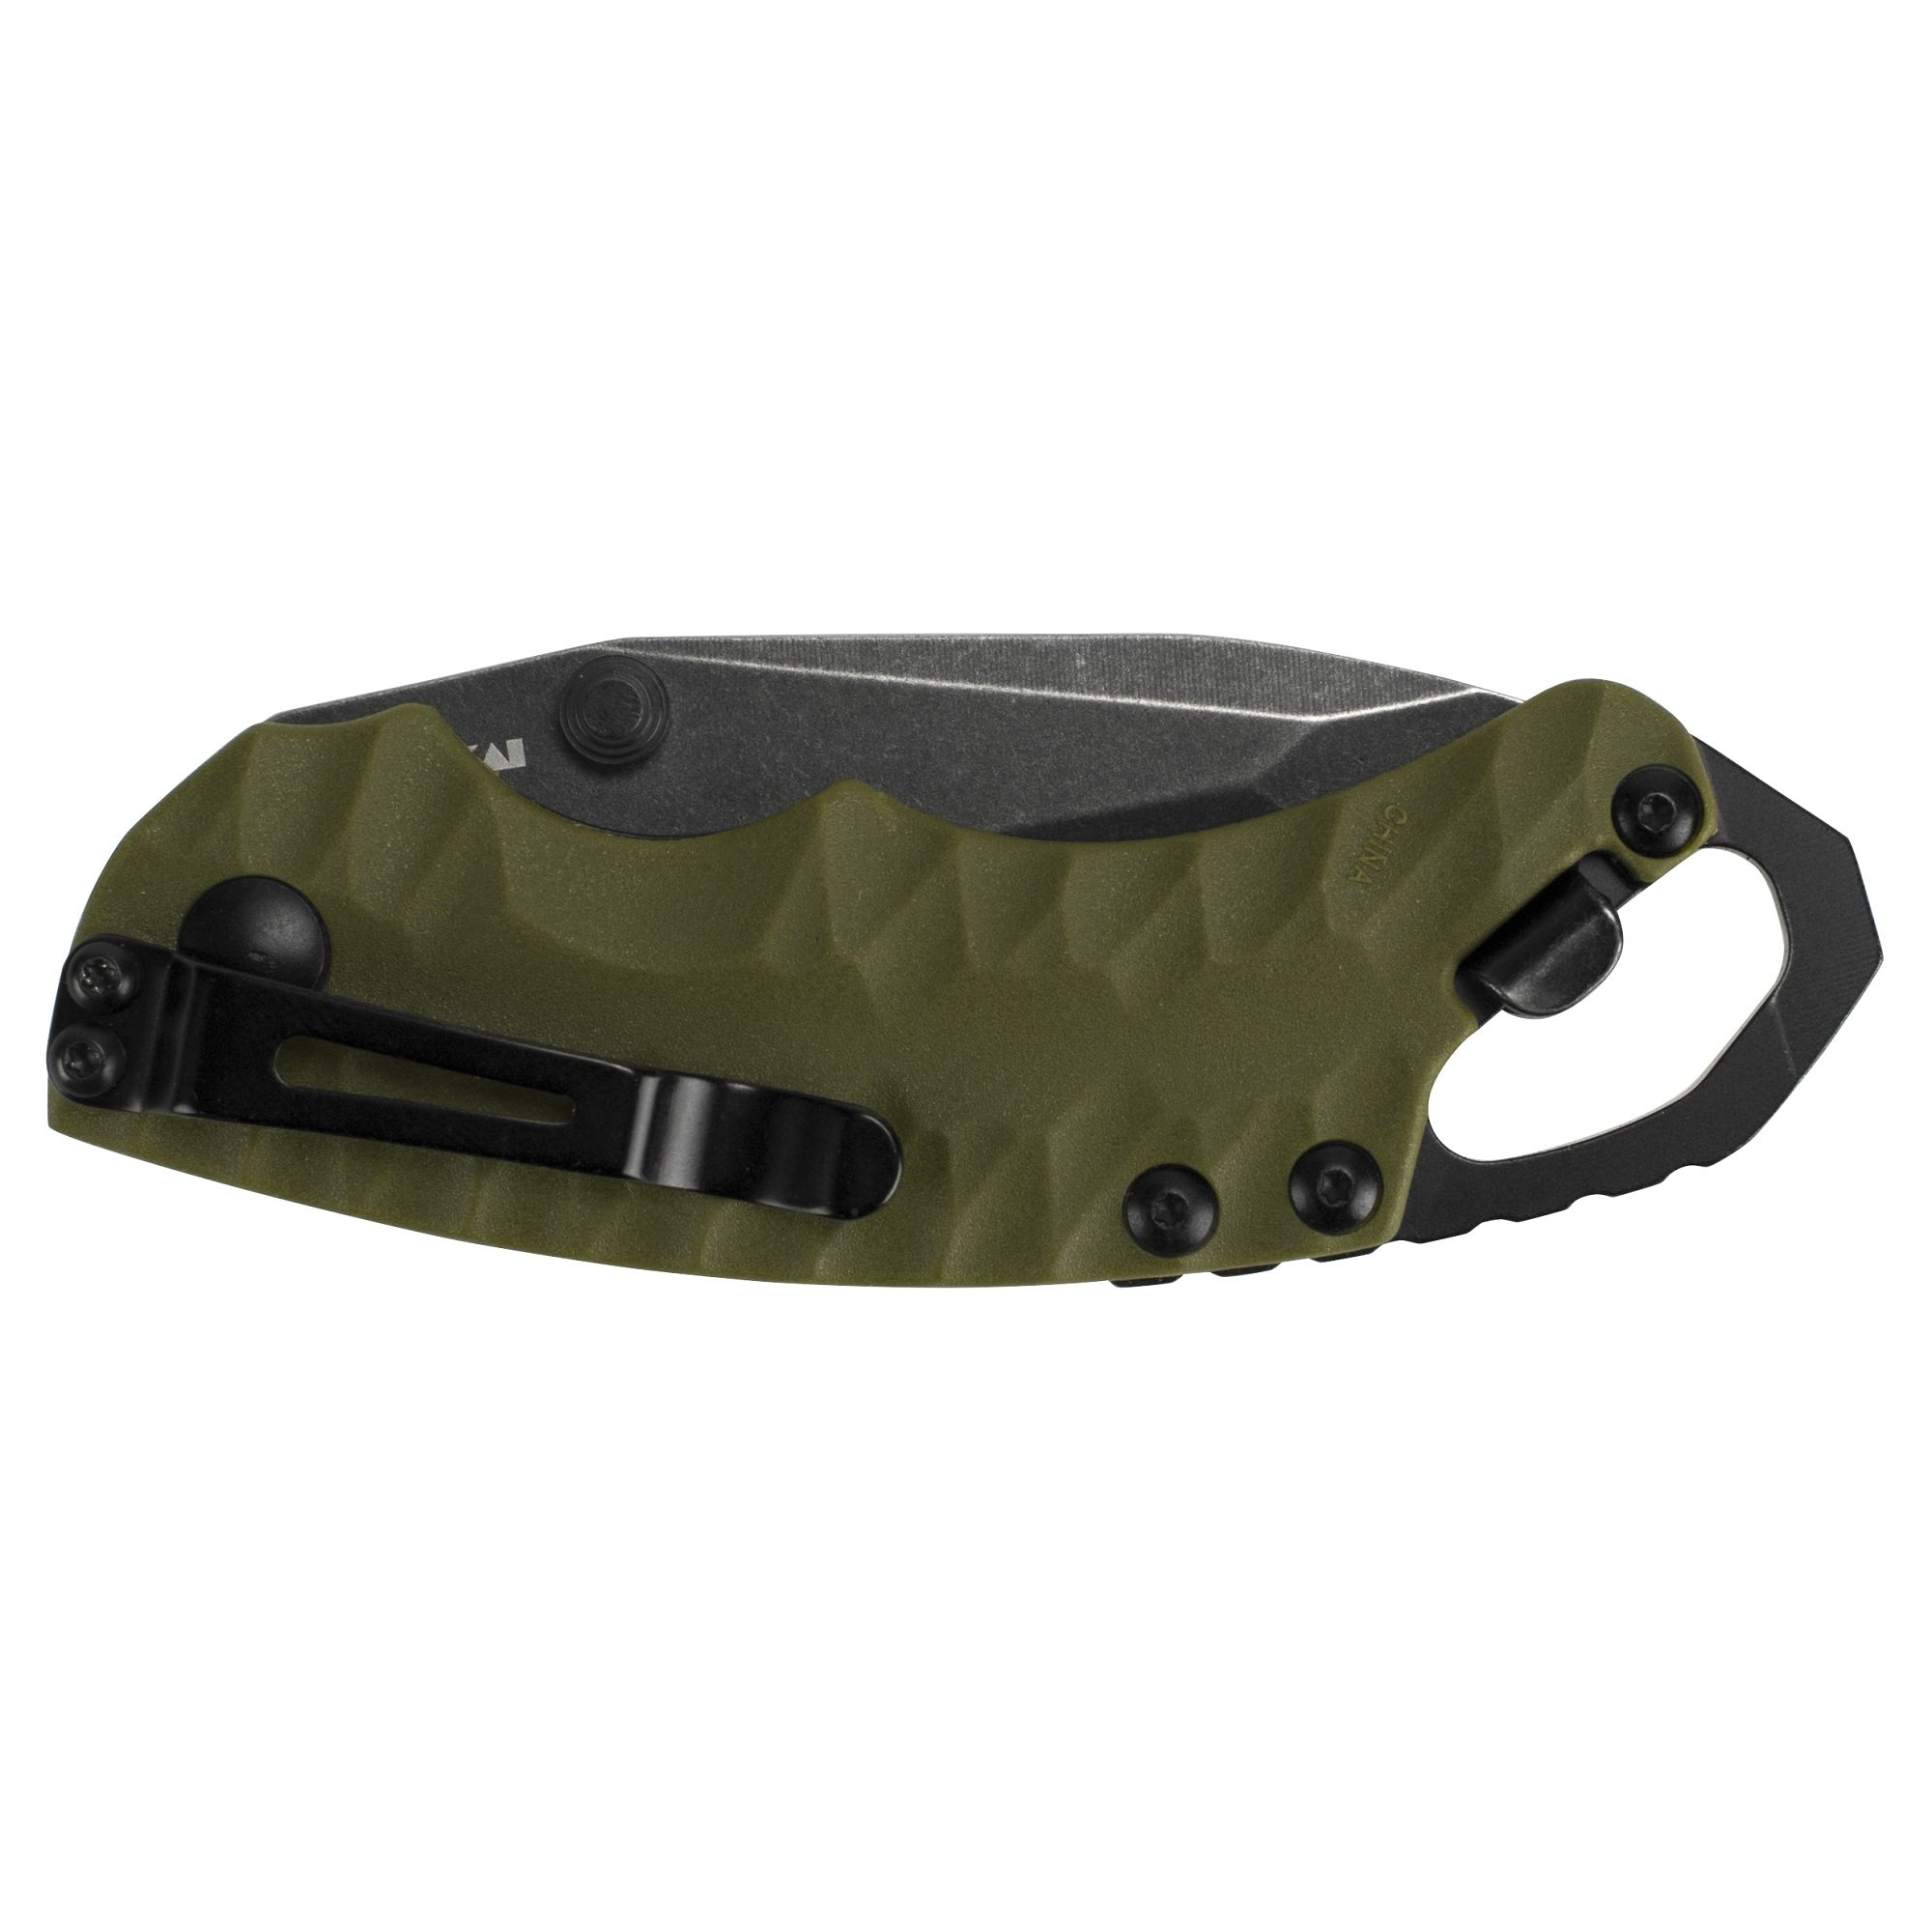 Kershaw Shuffle II Olive Multifunction Folding Pocket Knife (8750TOLBW), 2.6 In. 8Cr13MoV Stainless Steel Tanto Blade with Blackwash Finish and Reversible Pocketclip; 3 oz by Kershaw (Image #4)